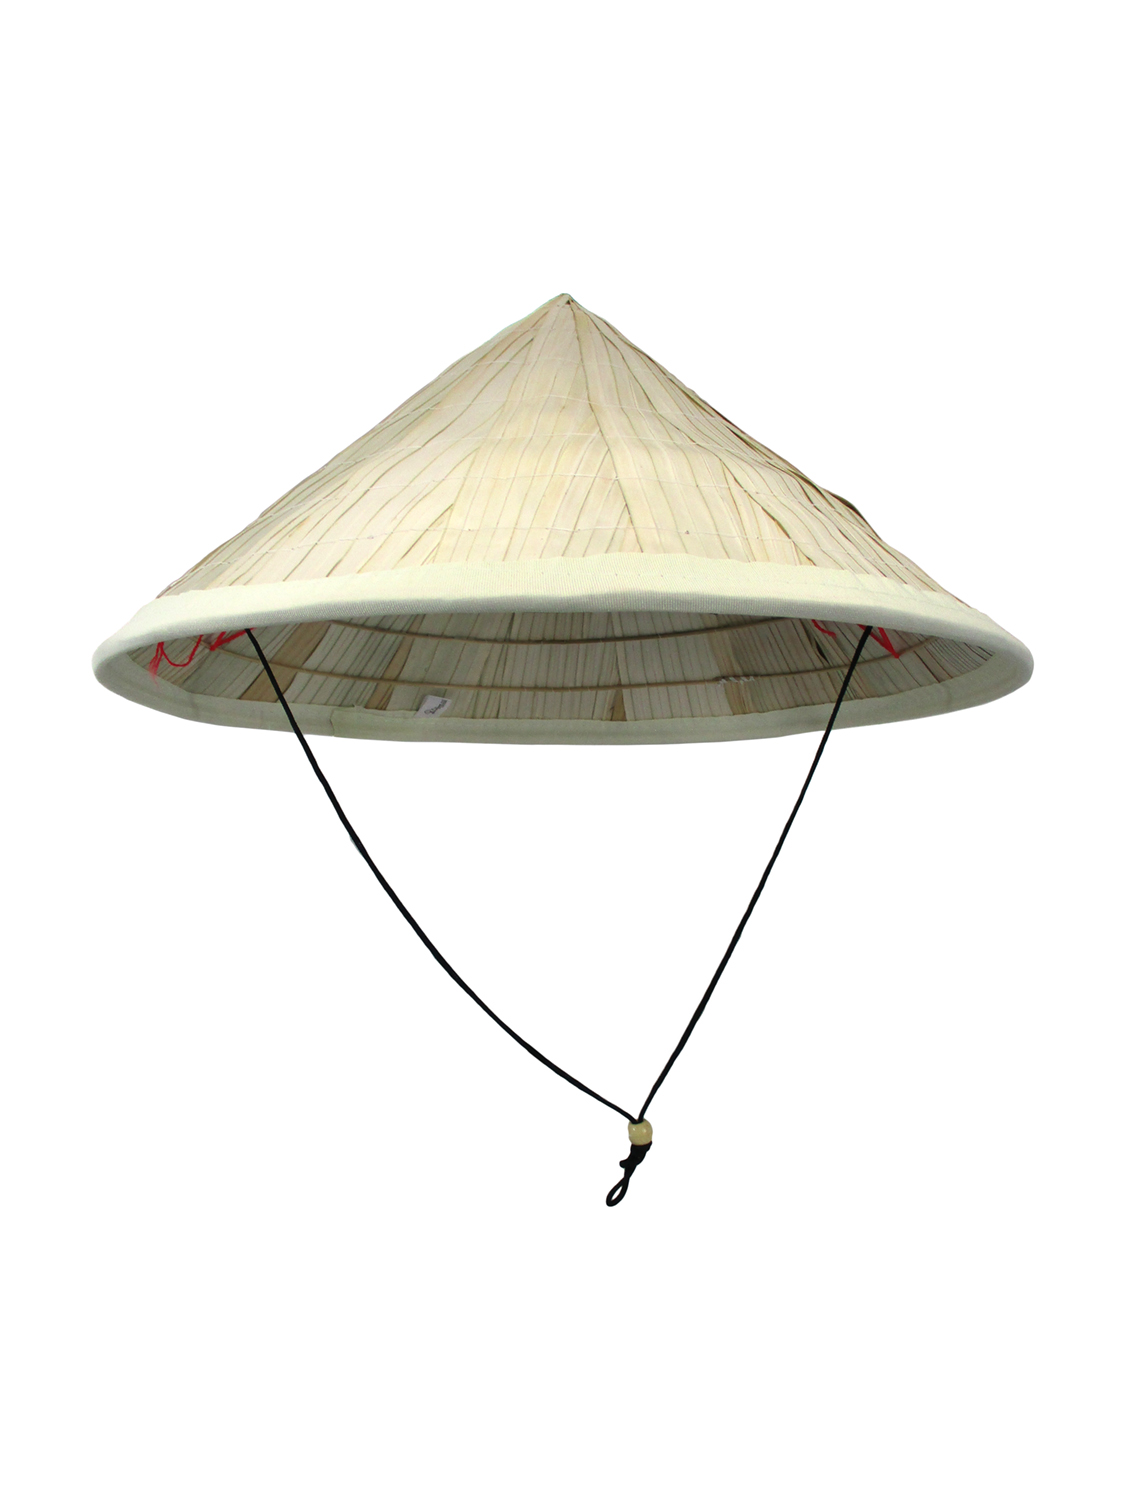 ee0237e5719 Coolie Hat Asian Conical Japanese Large Straw Bamboo Sun Rice Farmer Costume